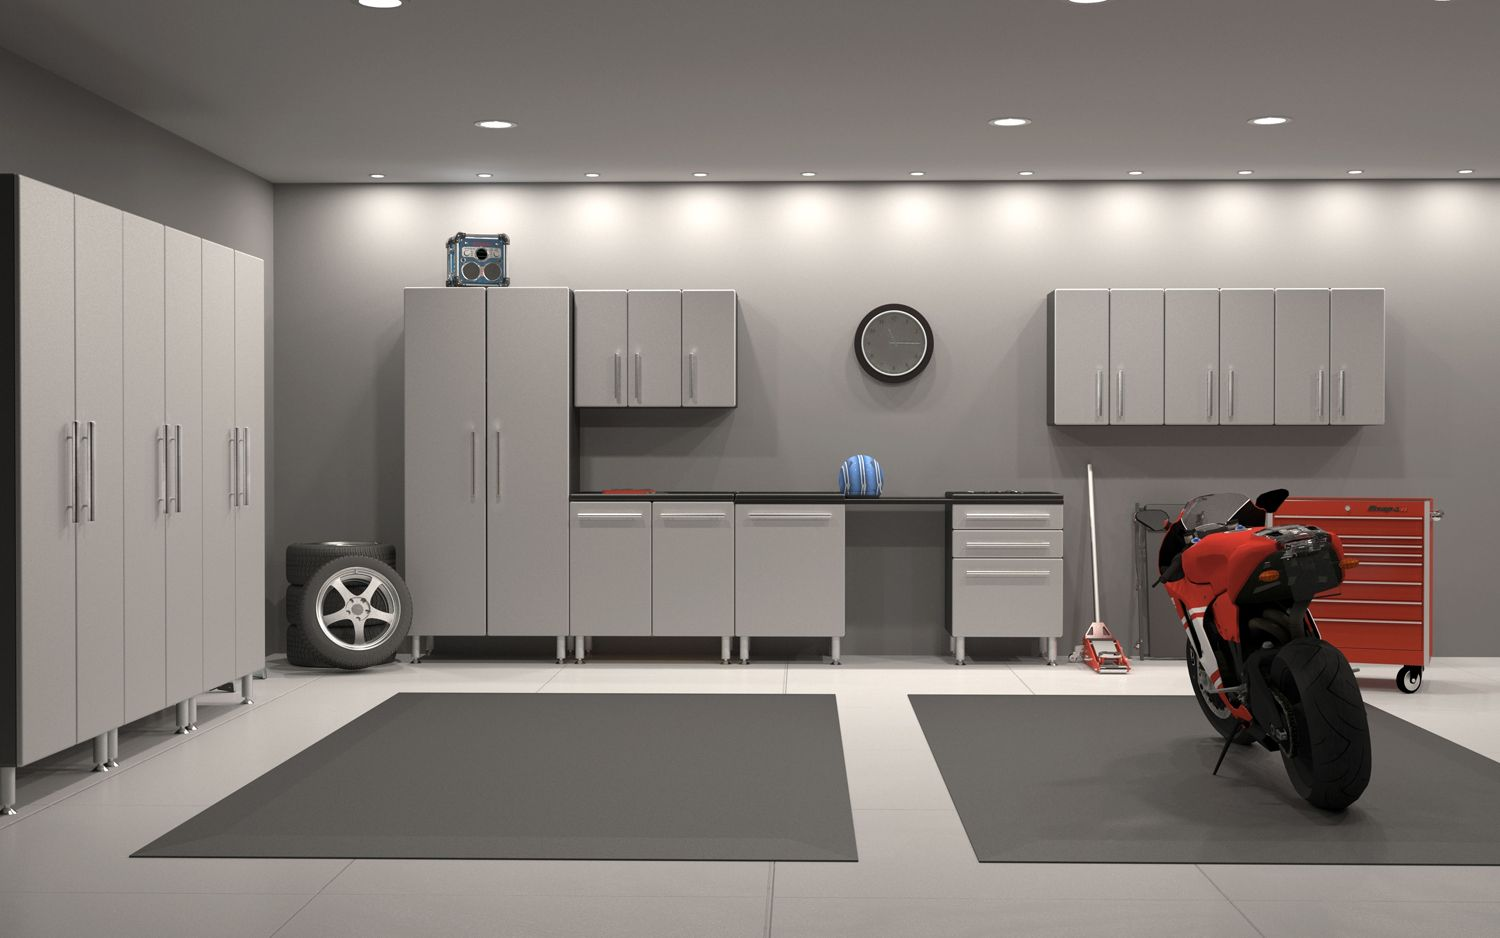 Garage Design Ideas Pictures extraordinary garage designs inspiration and miraculous chess floor for garage design ideas match to vintage kitchen Cool Garage Ideas Elegant Garage Designs